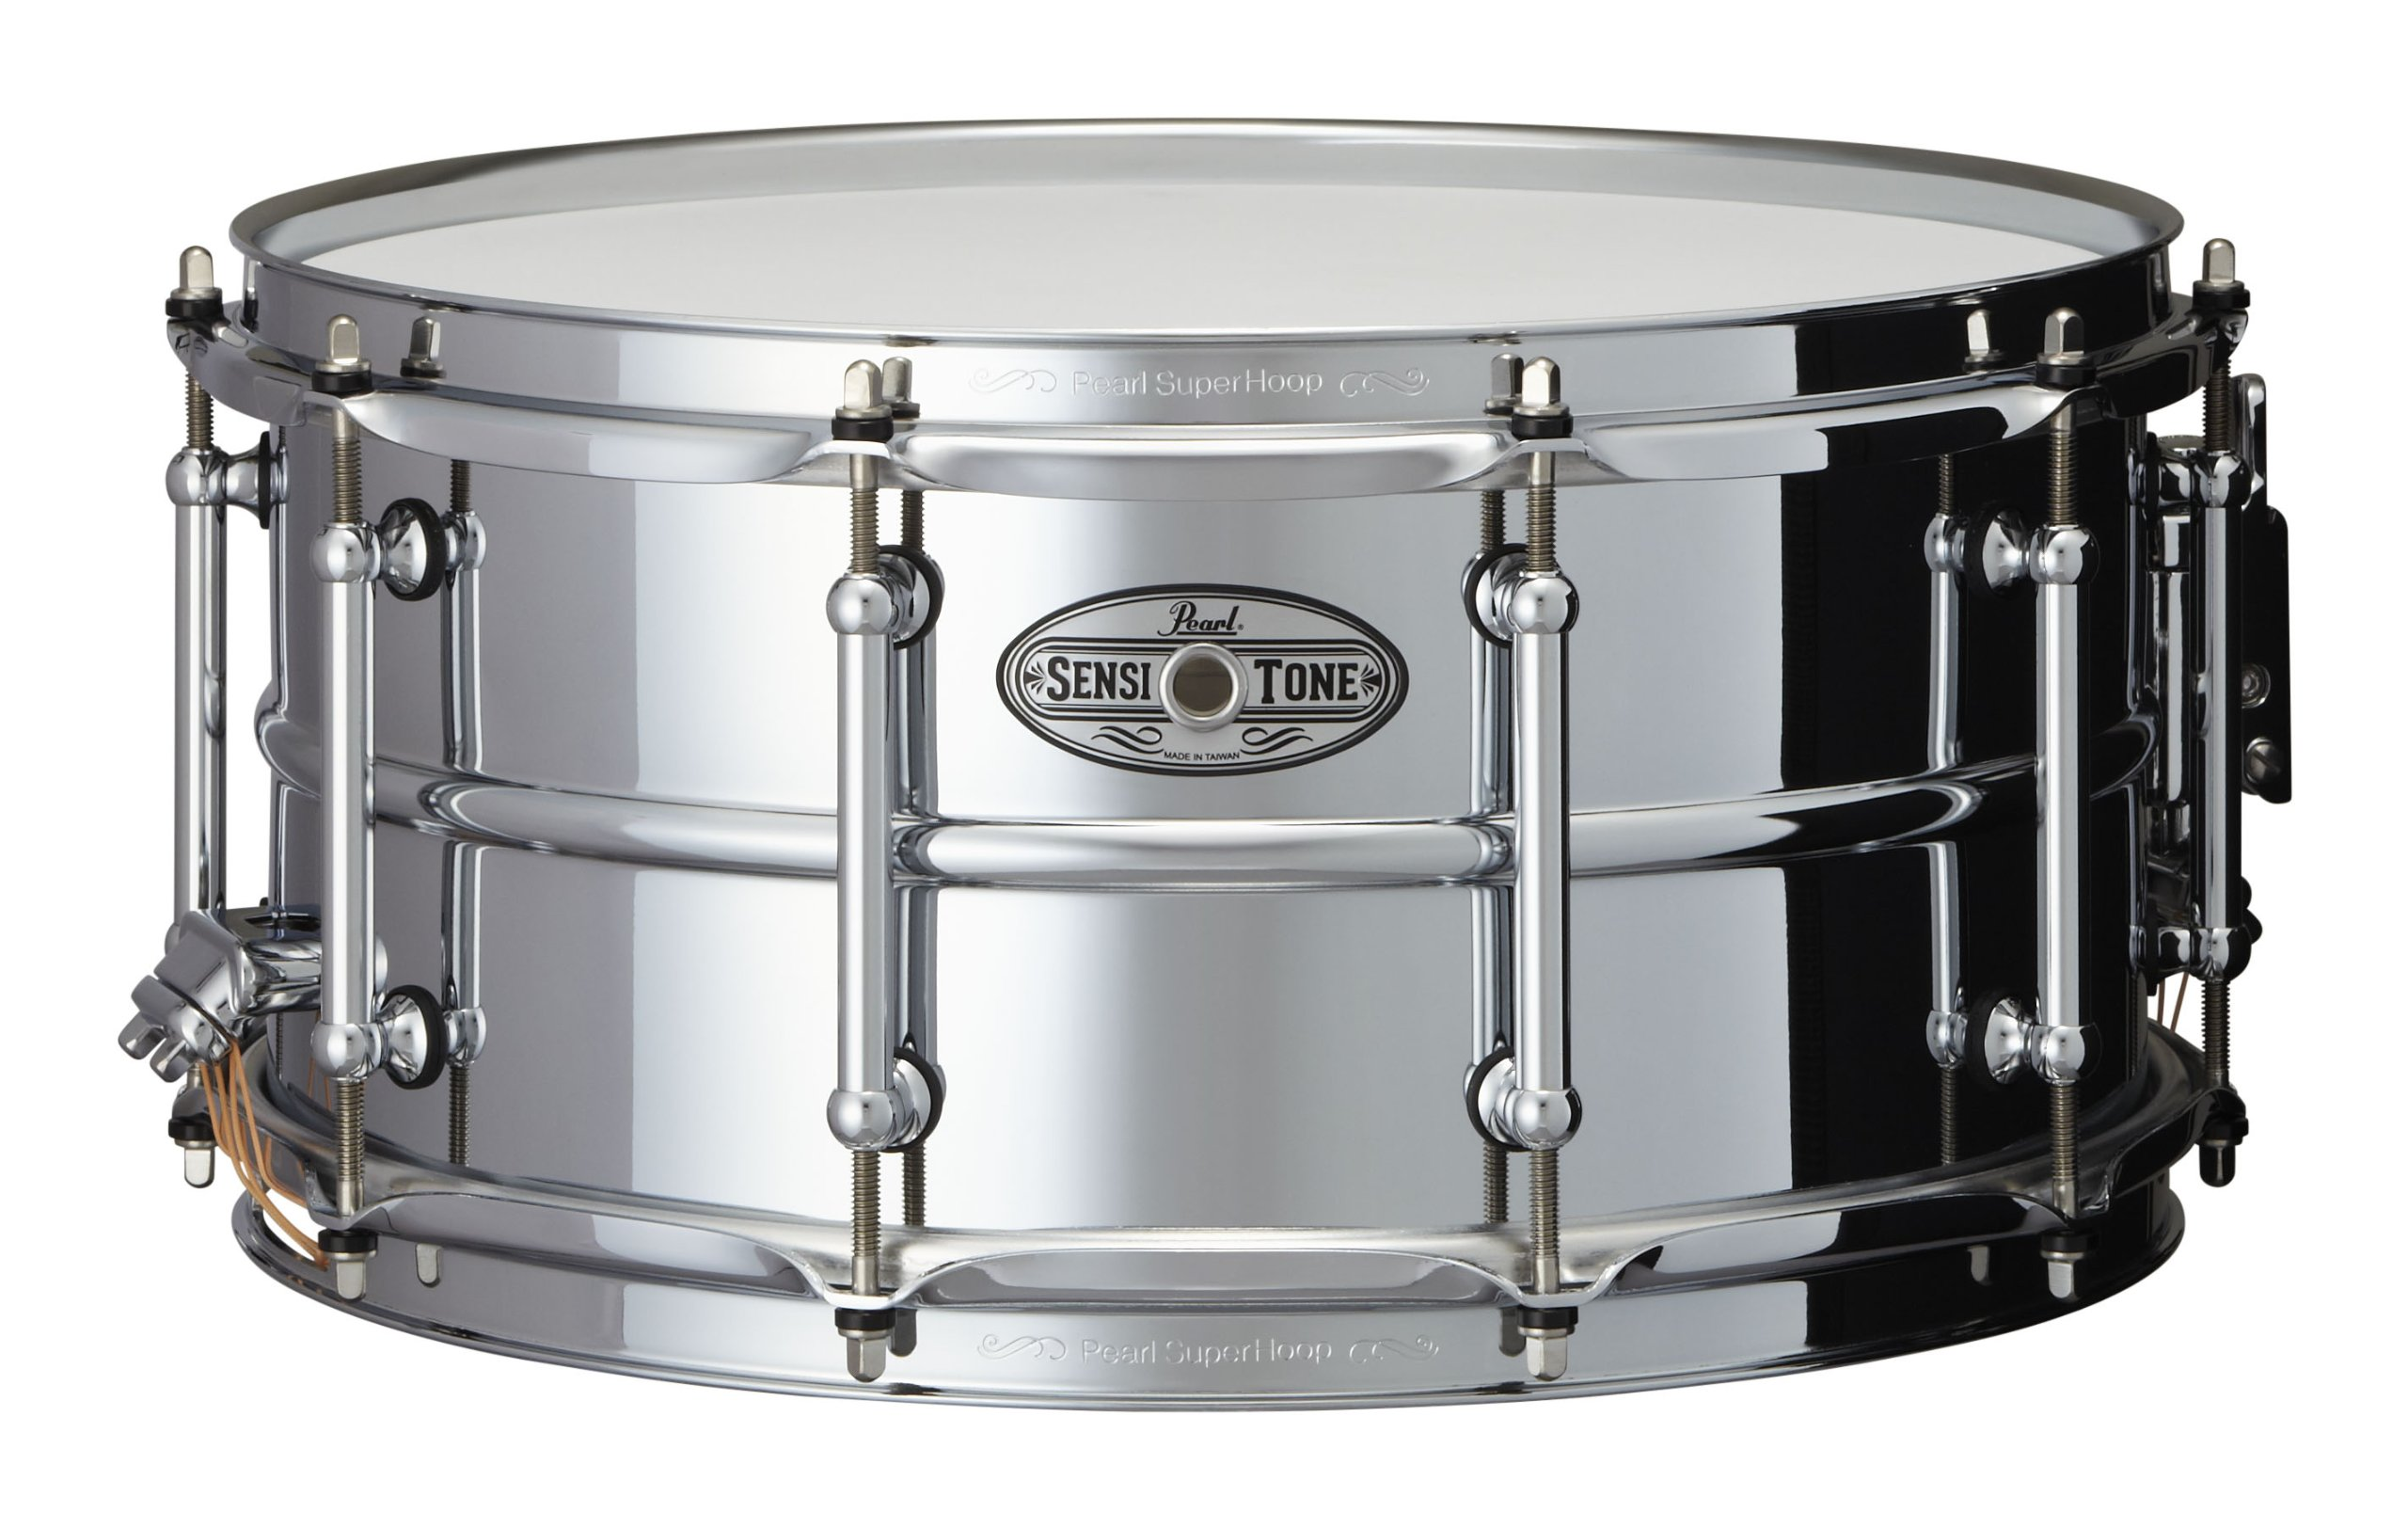 Pearl Snare Drum, 14-inch (STA1465S) by Pearl